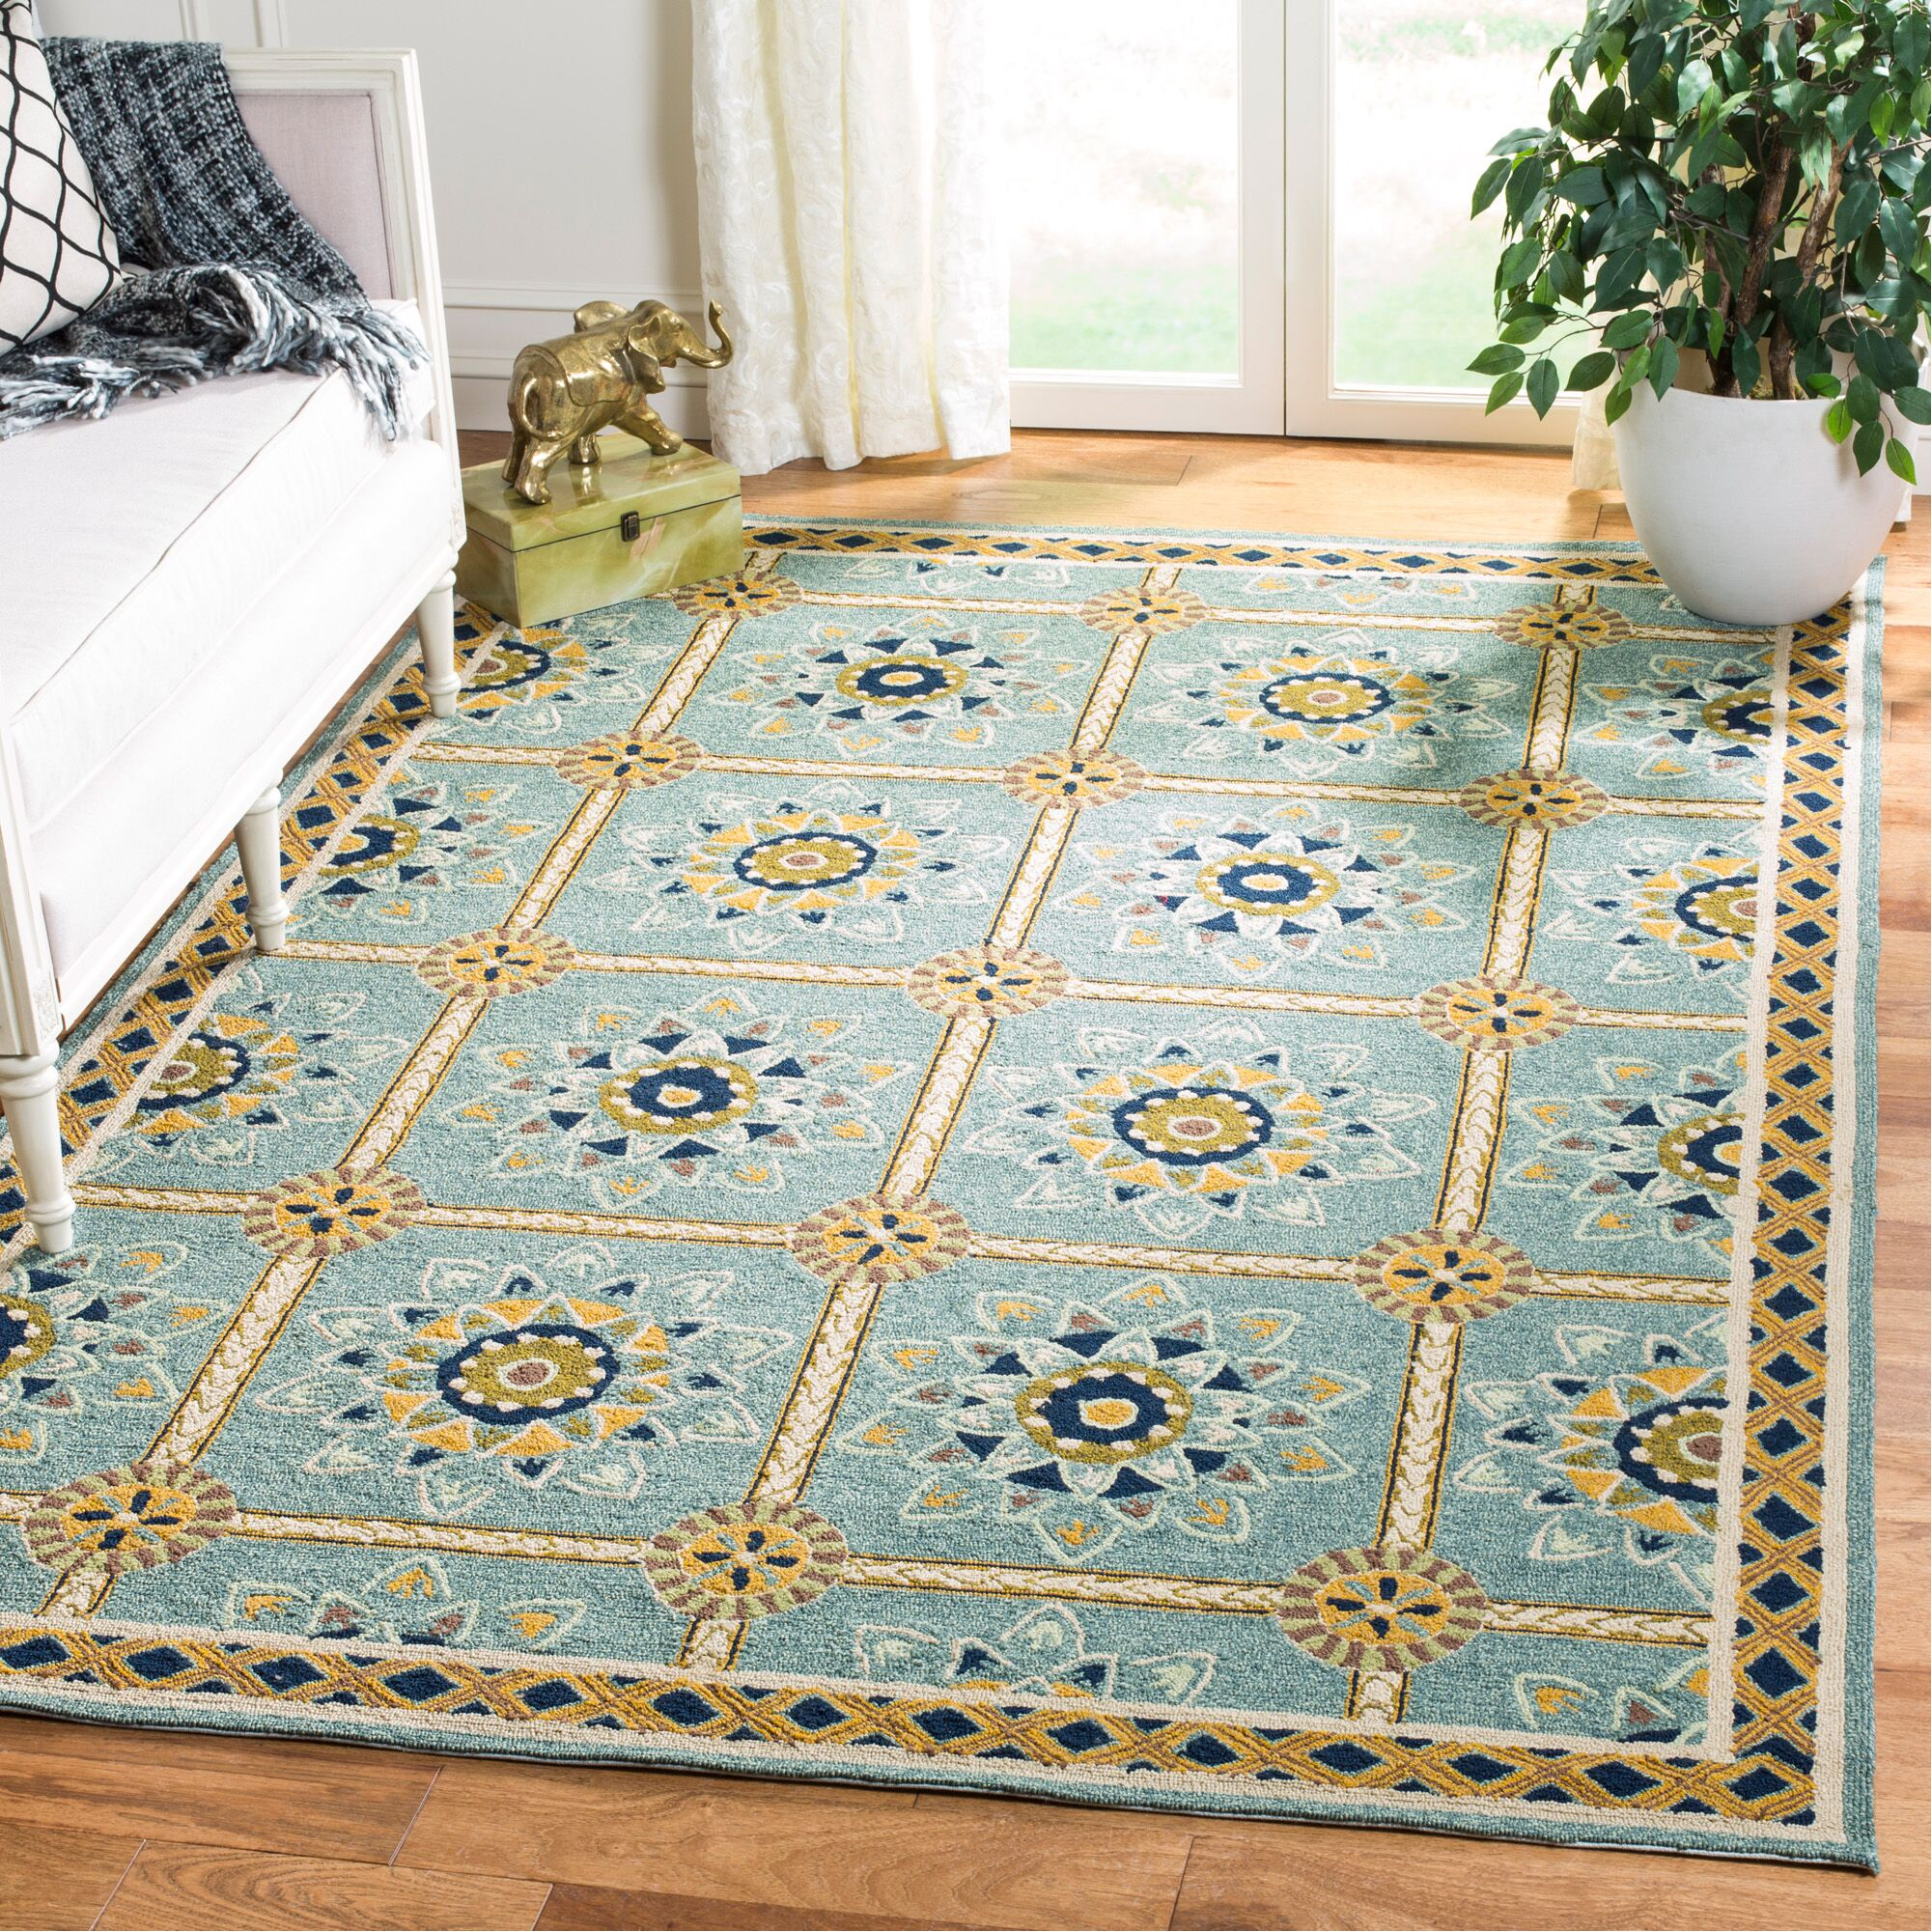 Istanbul Hand-Hooked Light Blue/Dark Blue Area Rug Rug Size: Rectangle 6' x 9'